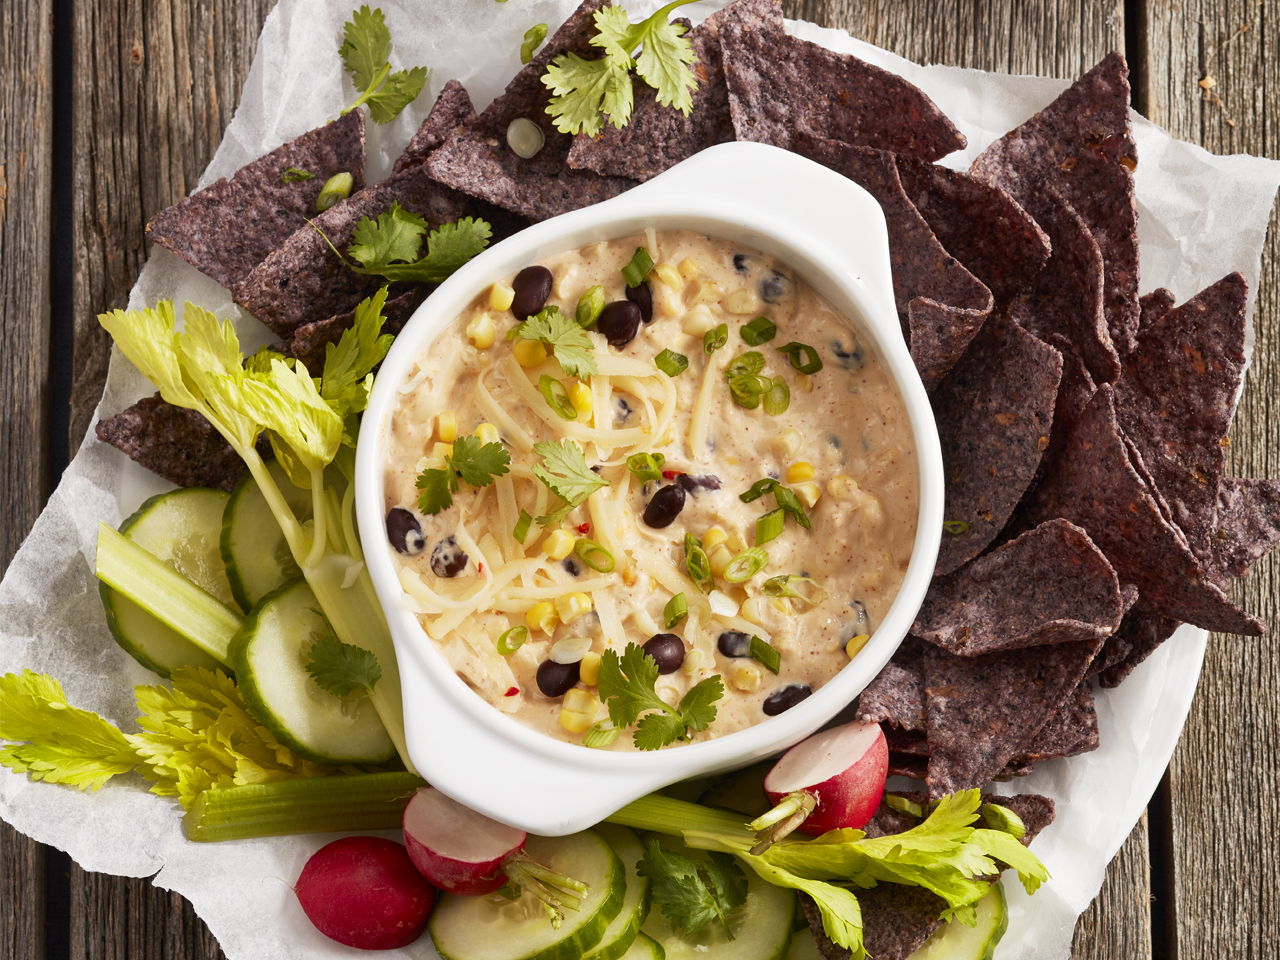 southwest corn and bean cream cheese dip with vegetables and tortilla chips